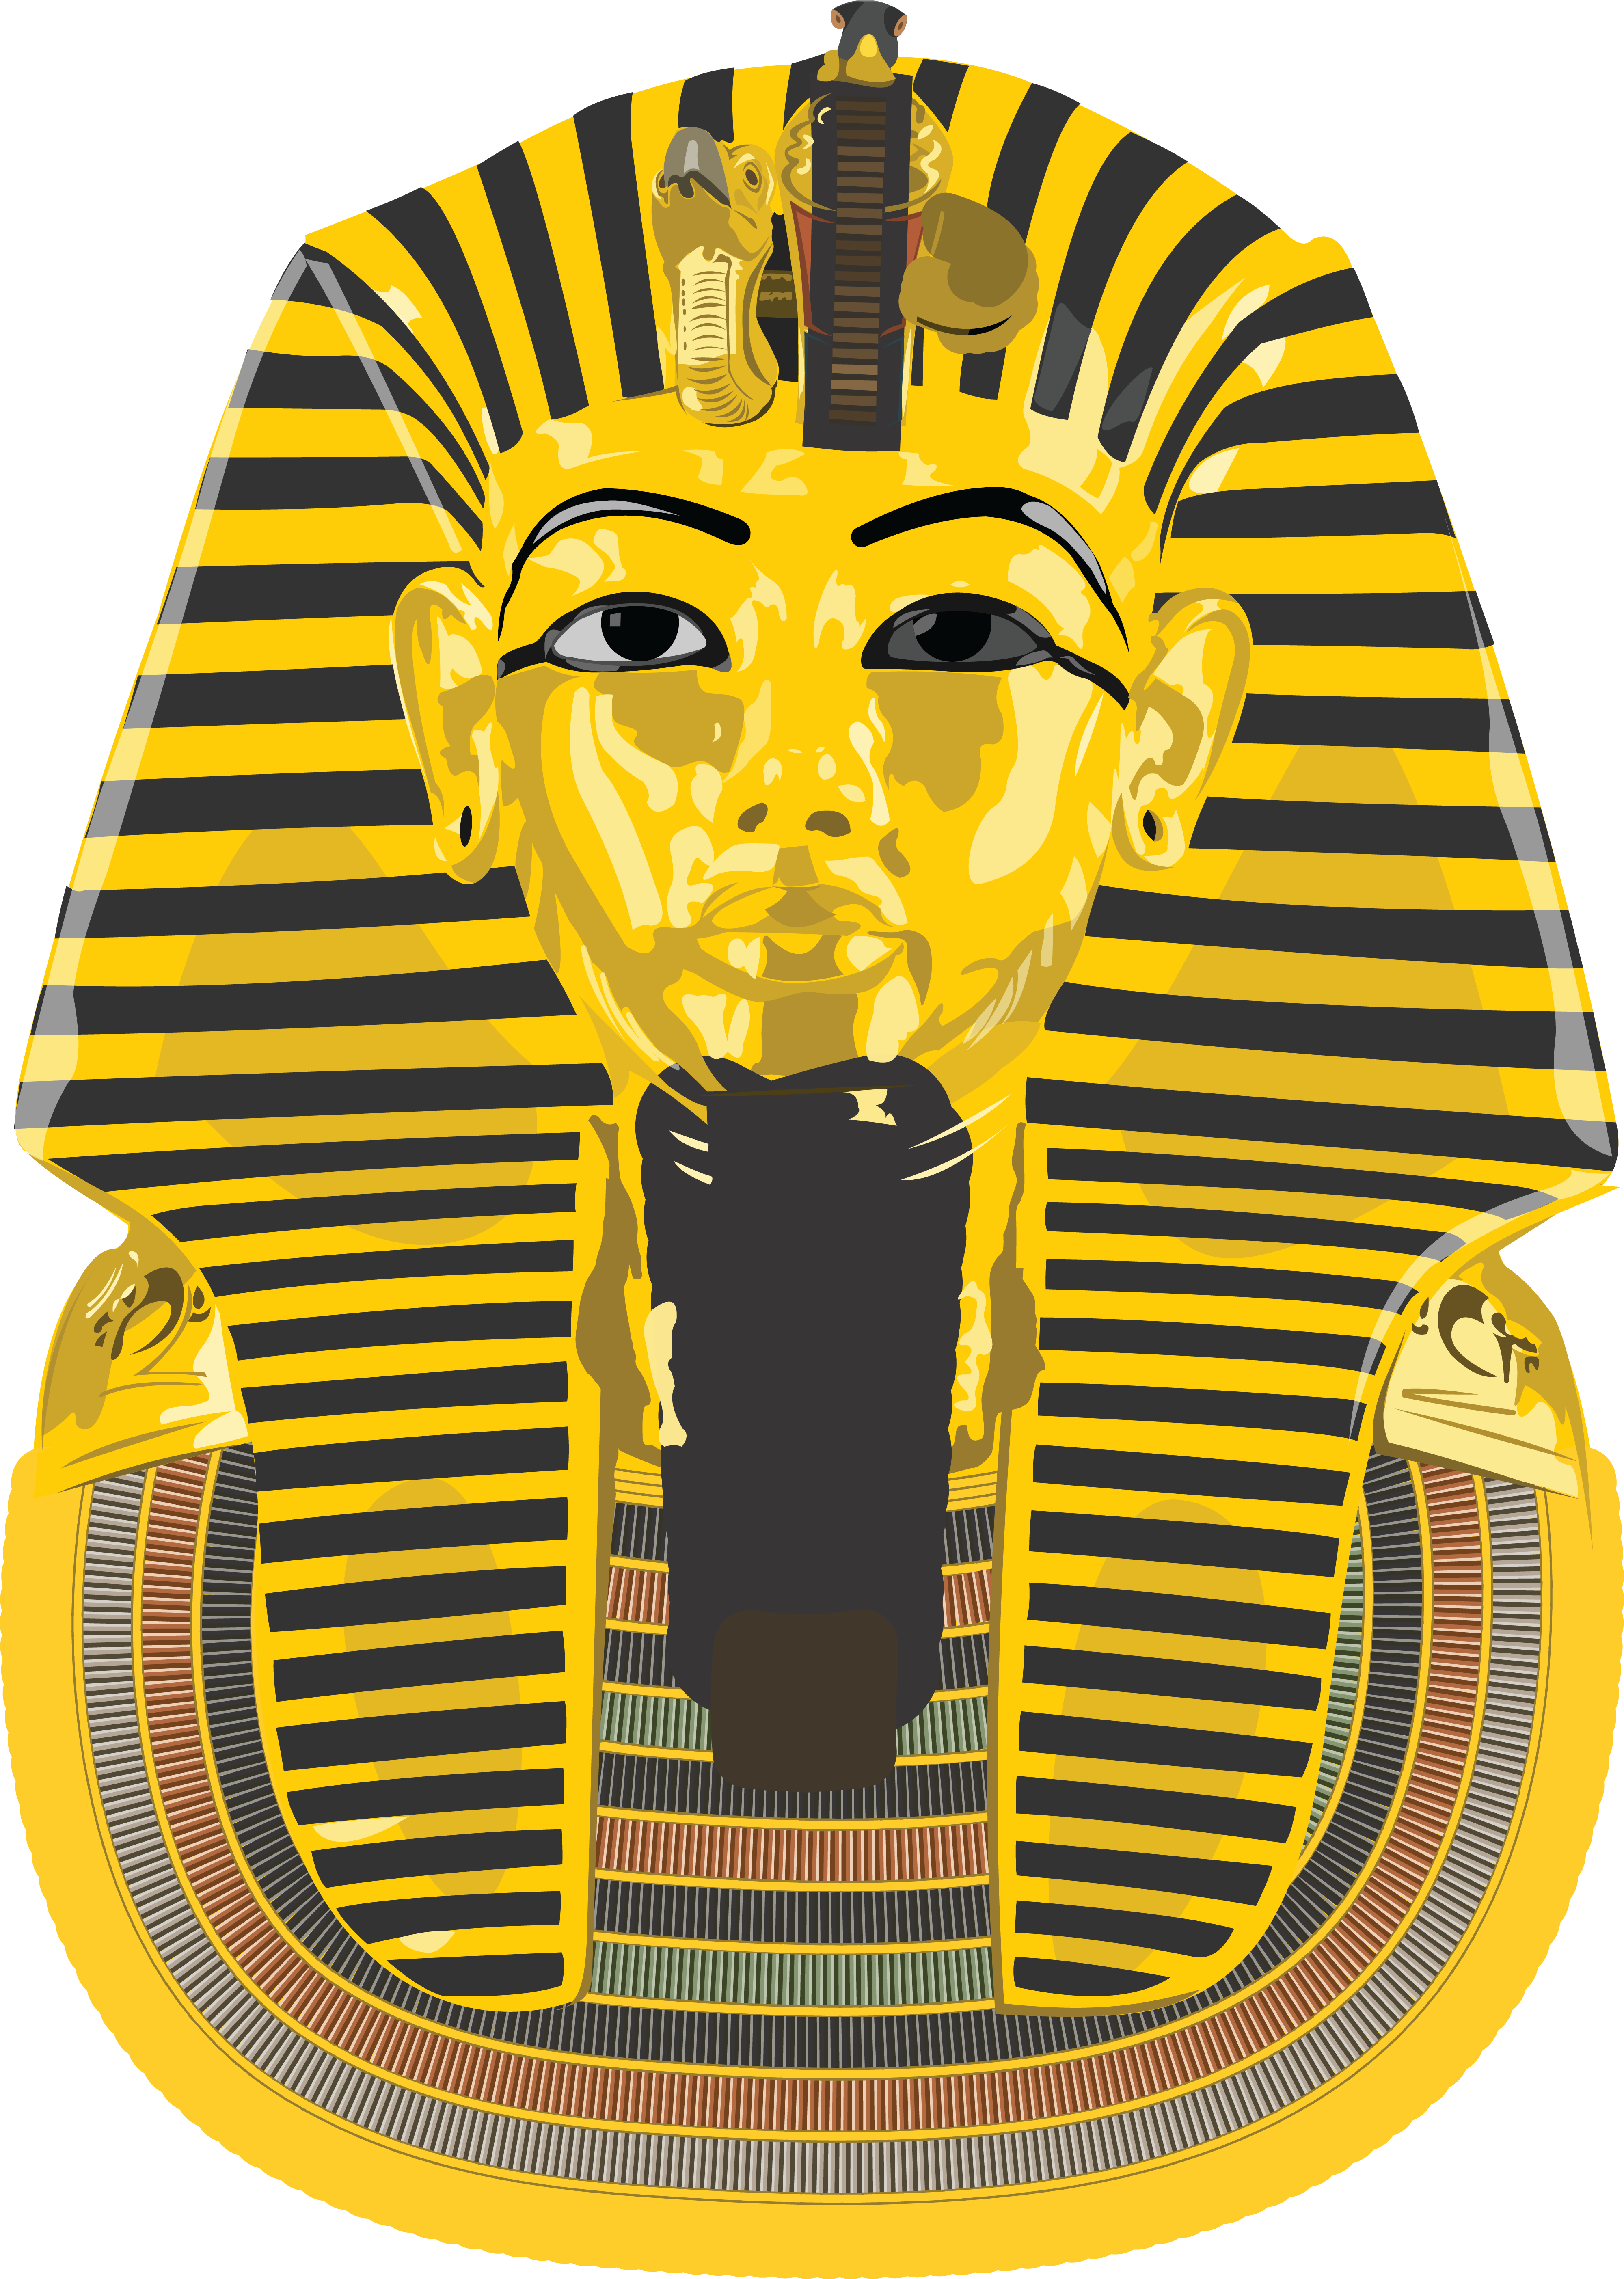 free clipart of an ancient egyptian death mask for king tutankhamun rh free clipartof com ancient egypt clothing clipart ancient egypt clipart free